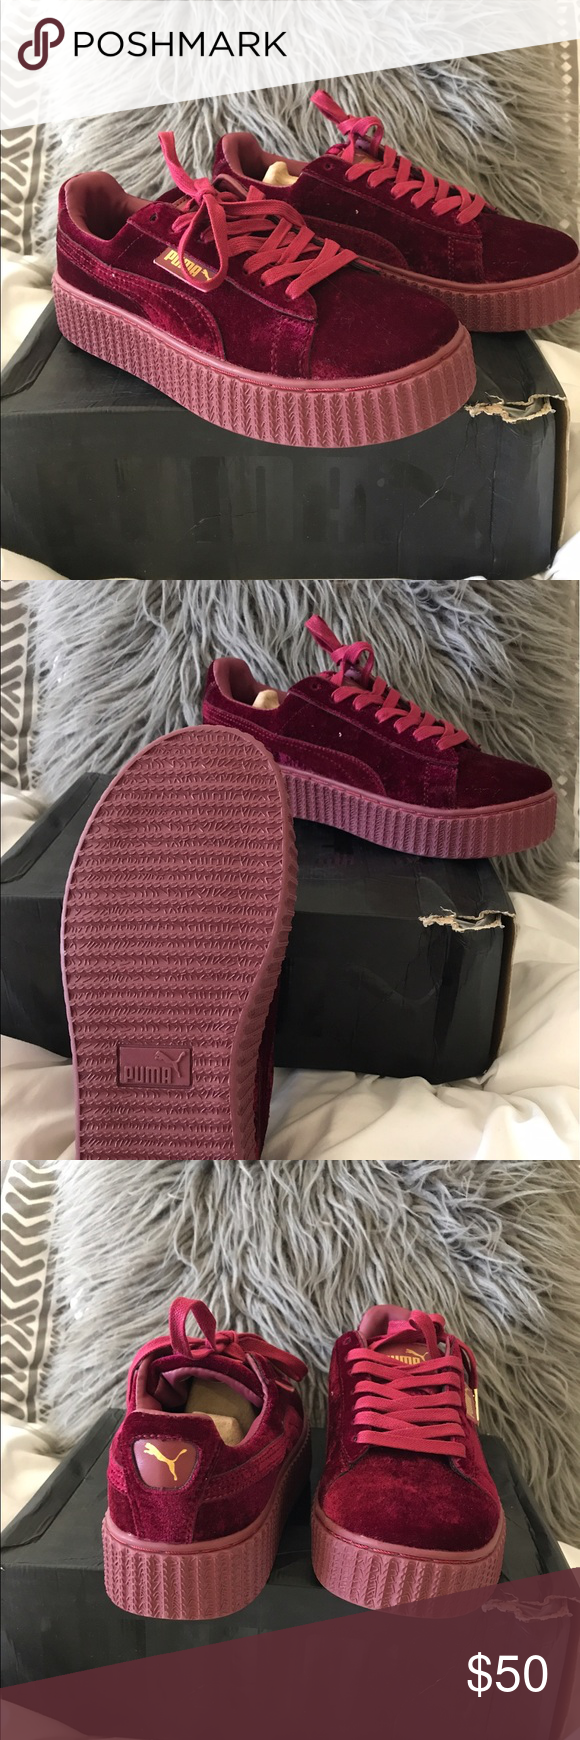 sale retailer 607bb b1b31 Fenty Puma Creepers Not authentic. Brand new/Never worn look ...